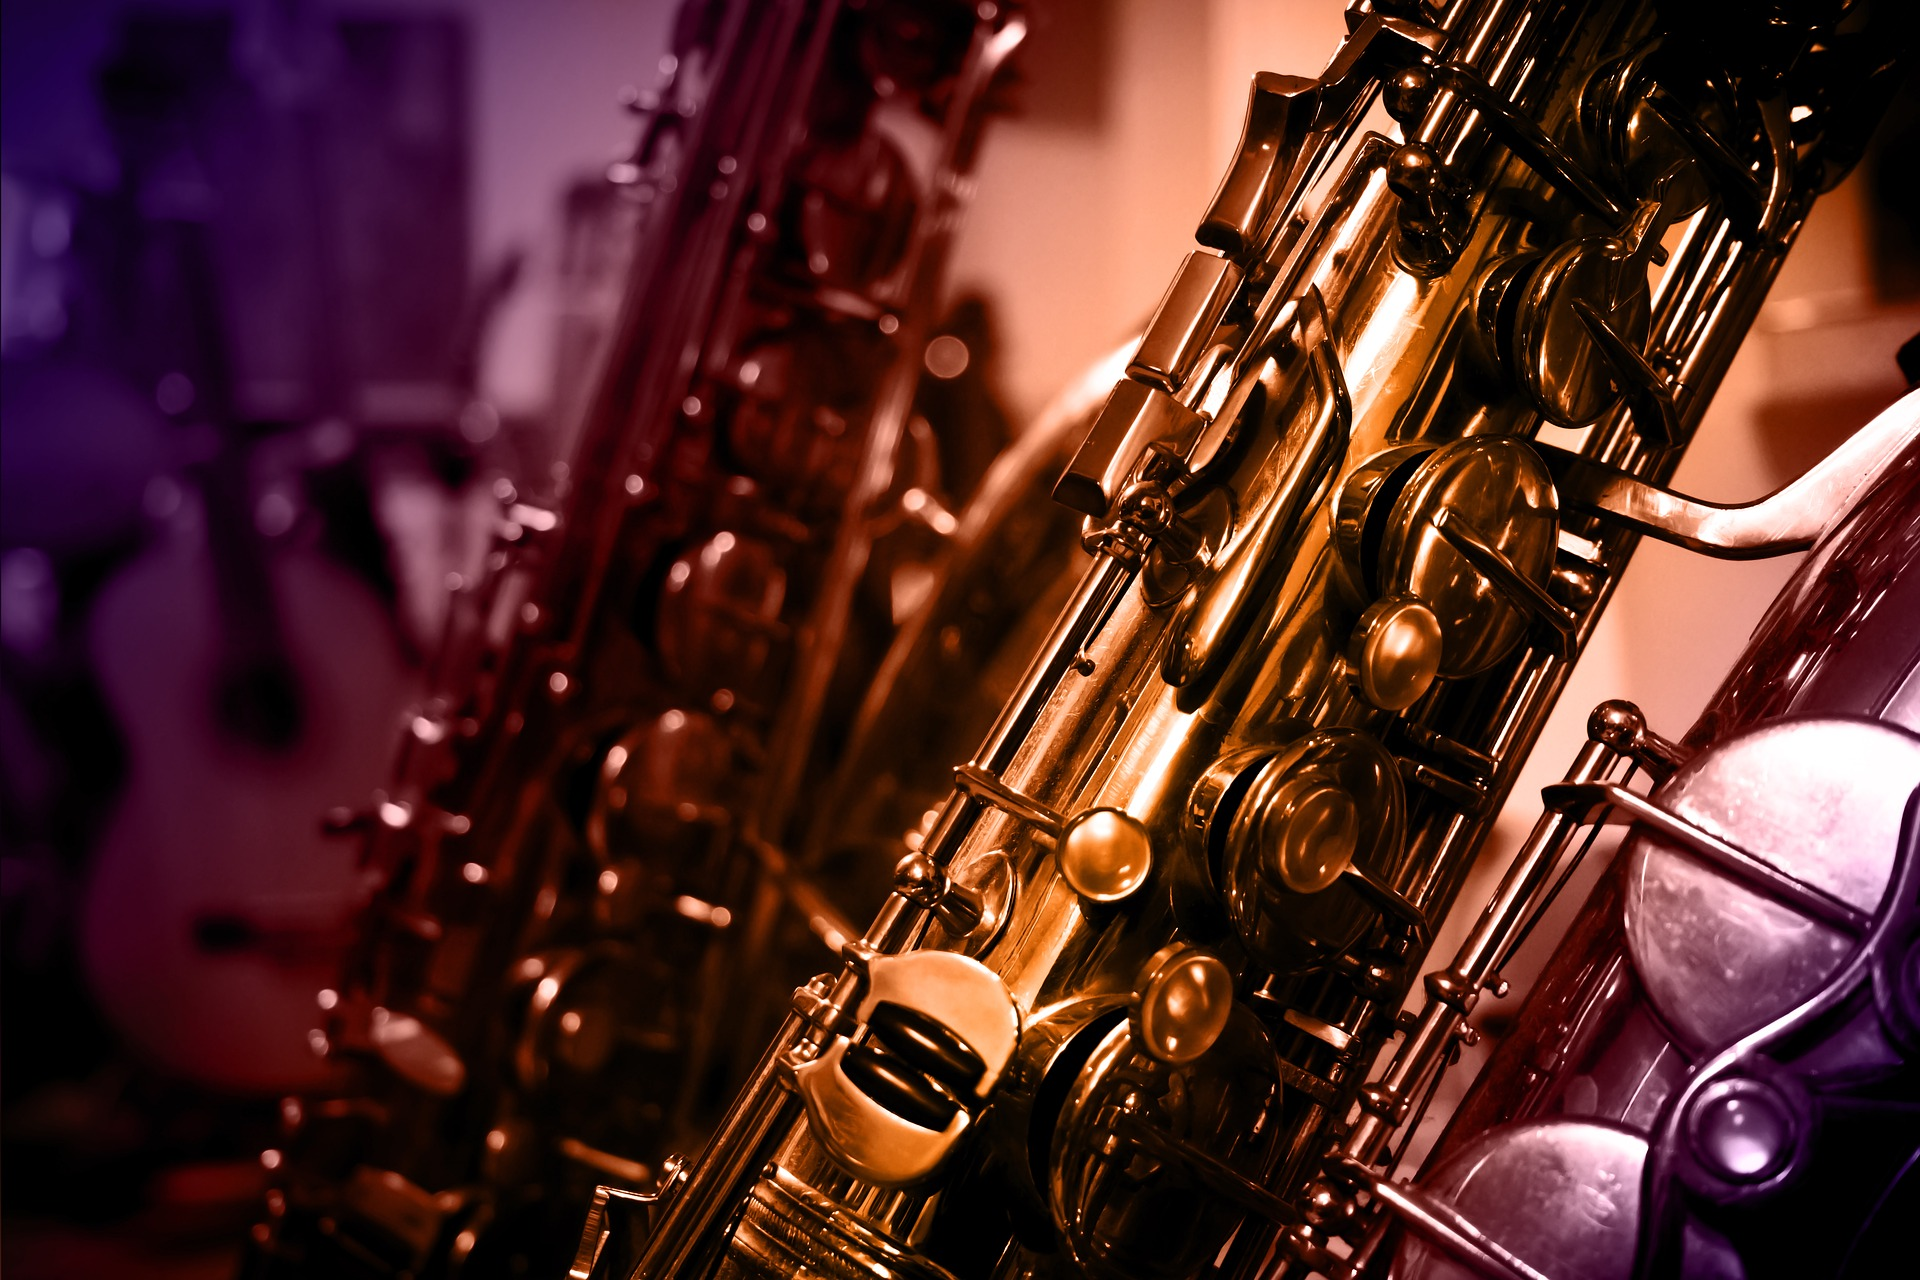 Saxophone quartet - Classical or jazz, background or foreground, the versatile choice